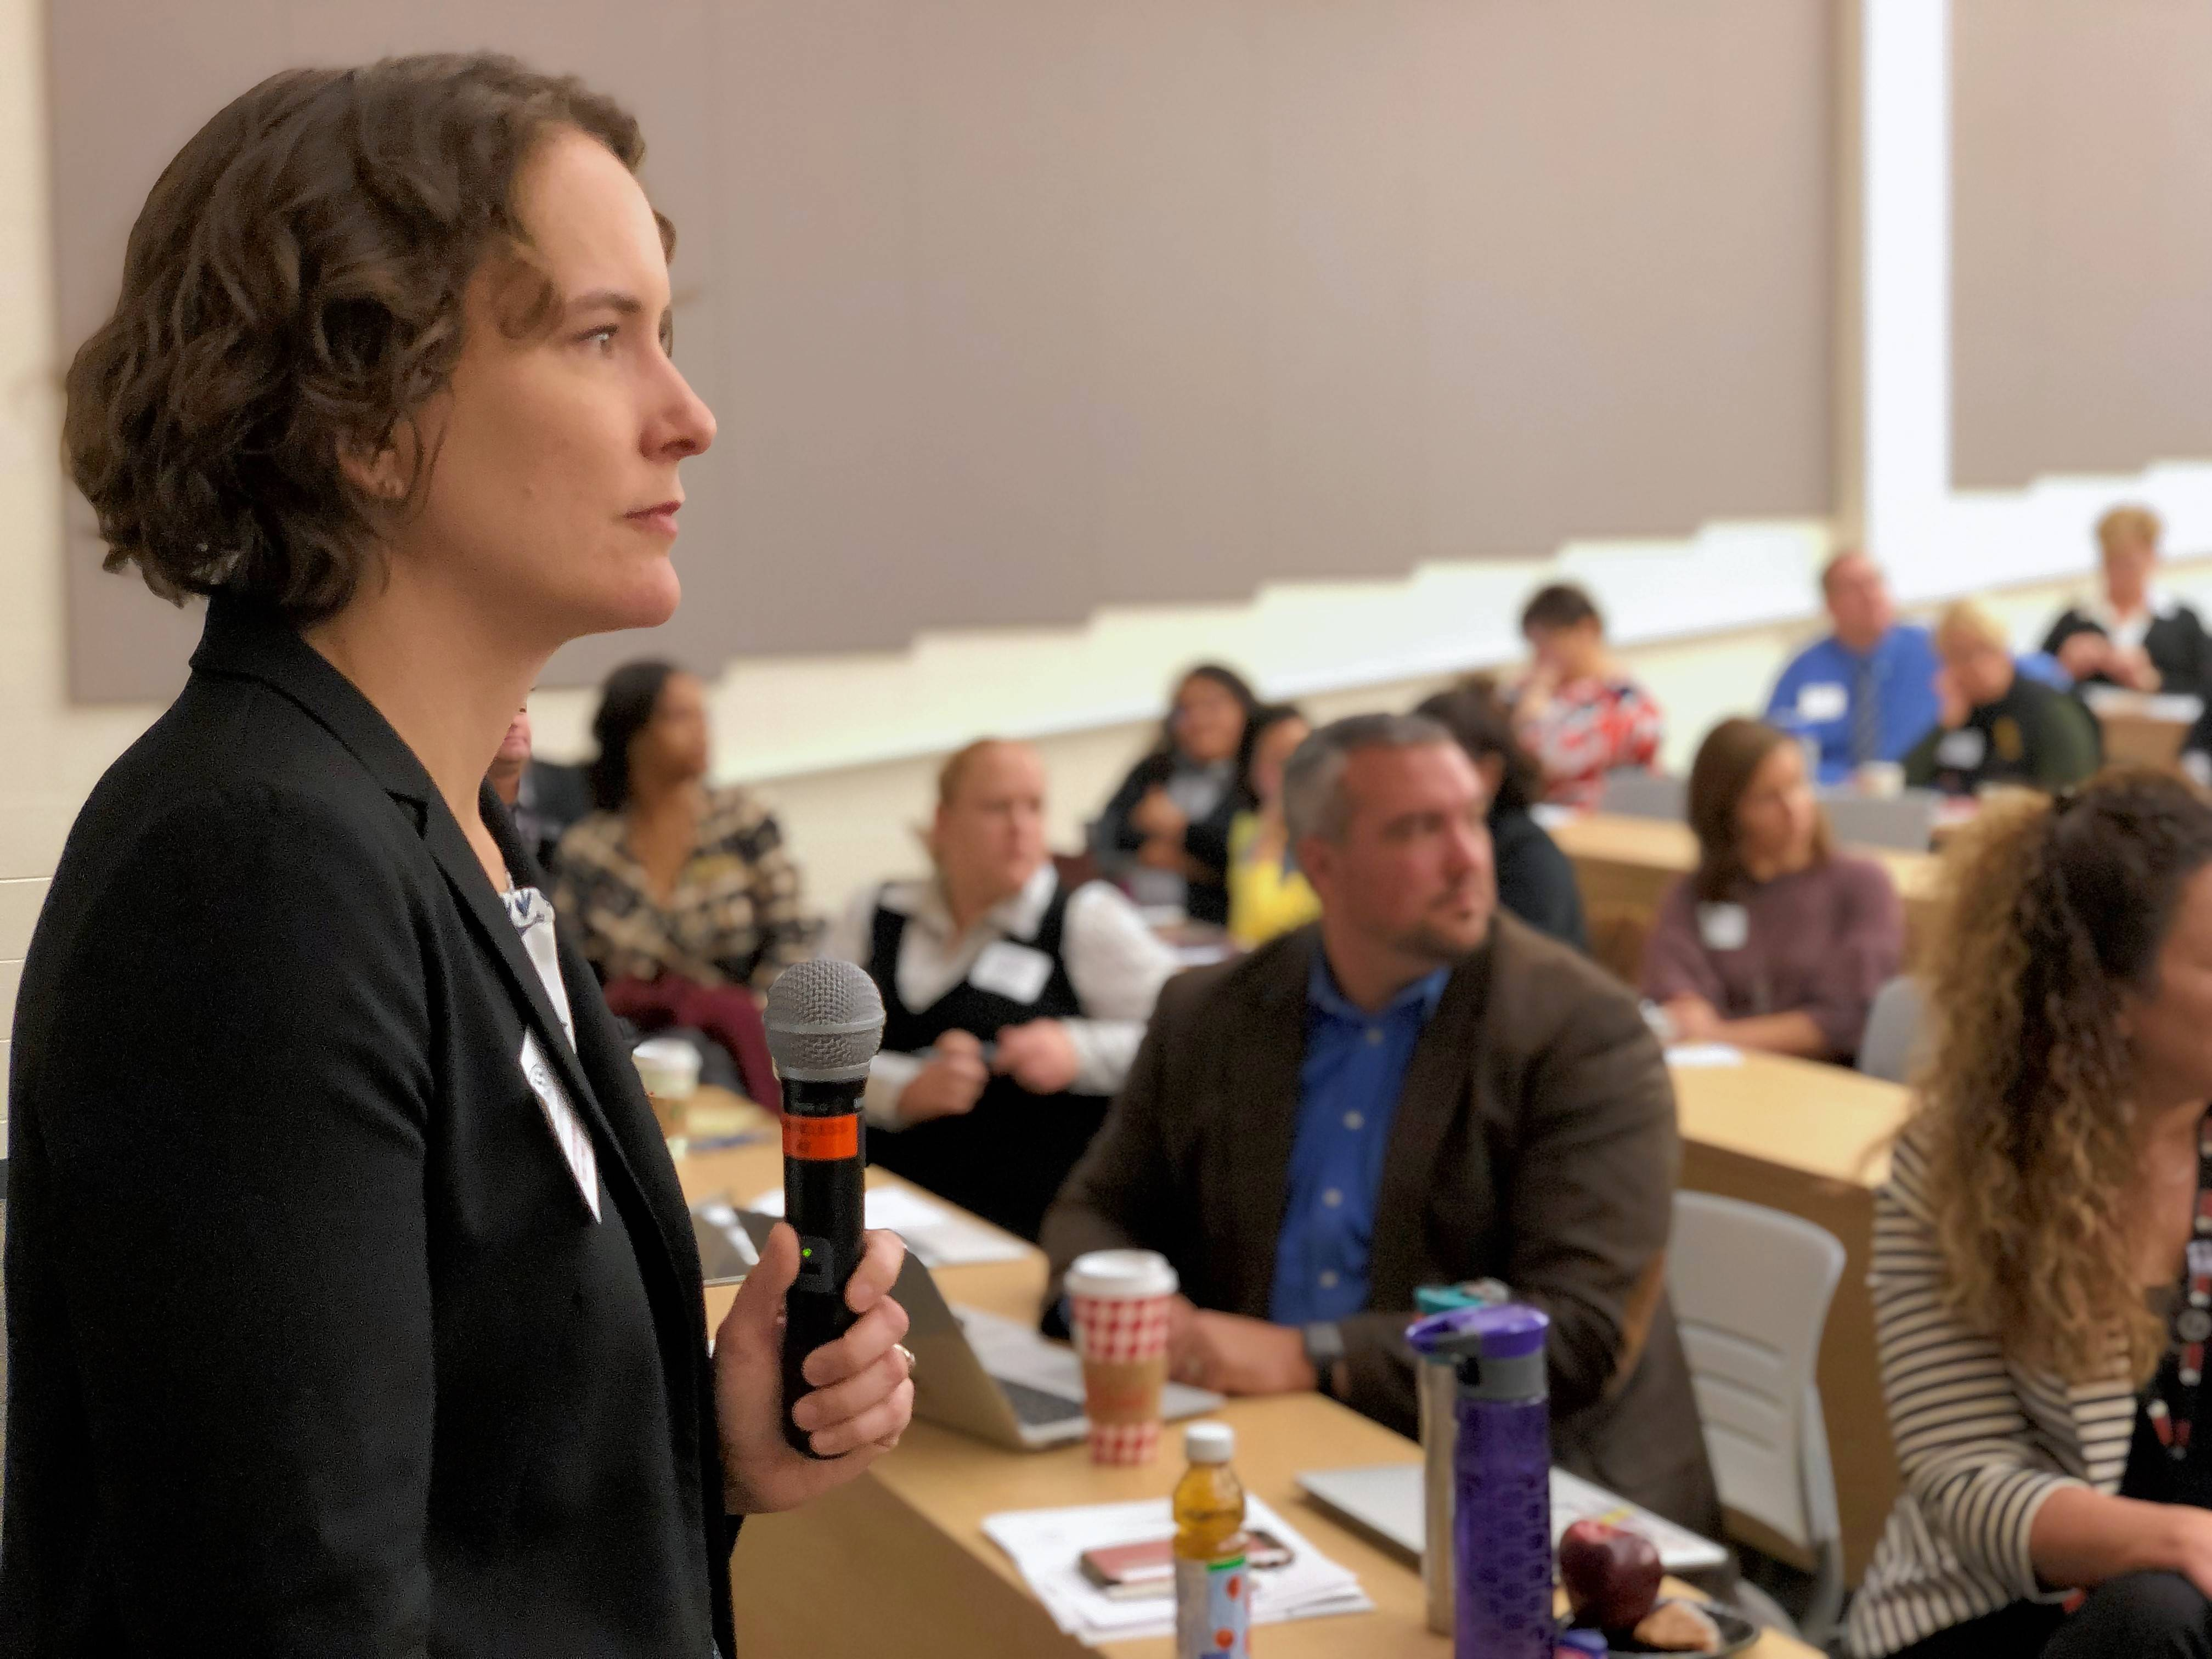 Researcher Elizabeth Kneebone takes questions Friday from suburban educators and community leaders during a program at Harper College in Palatine about the impact of poverty in the suburbs.